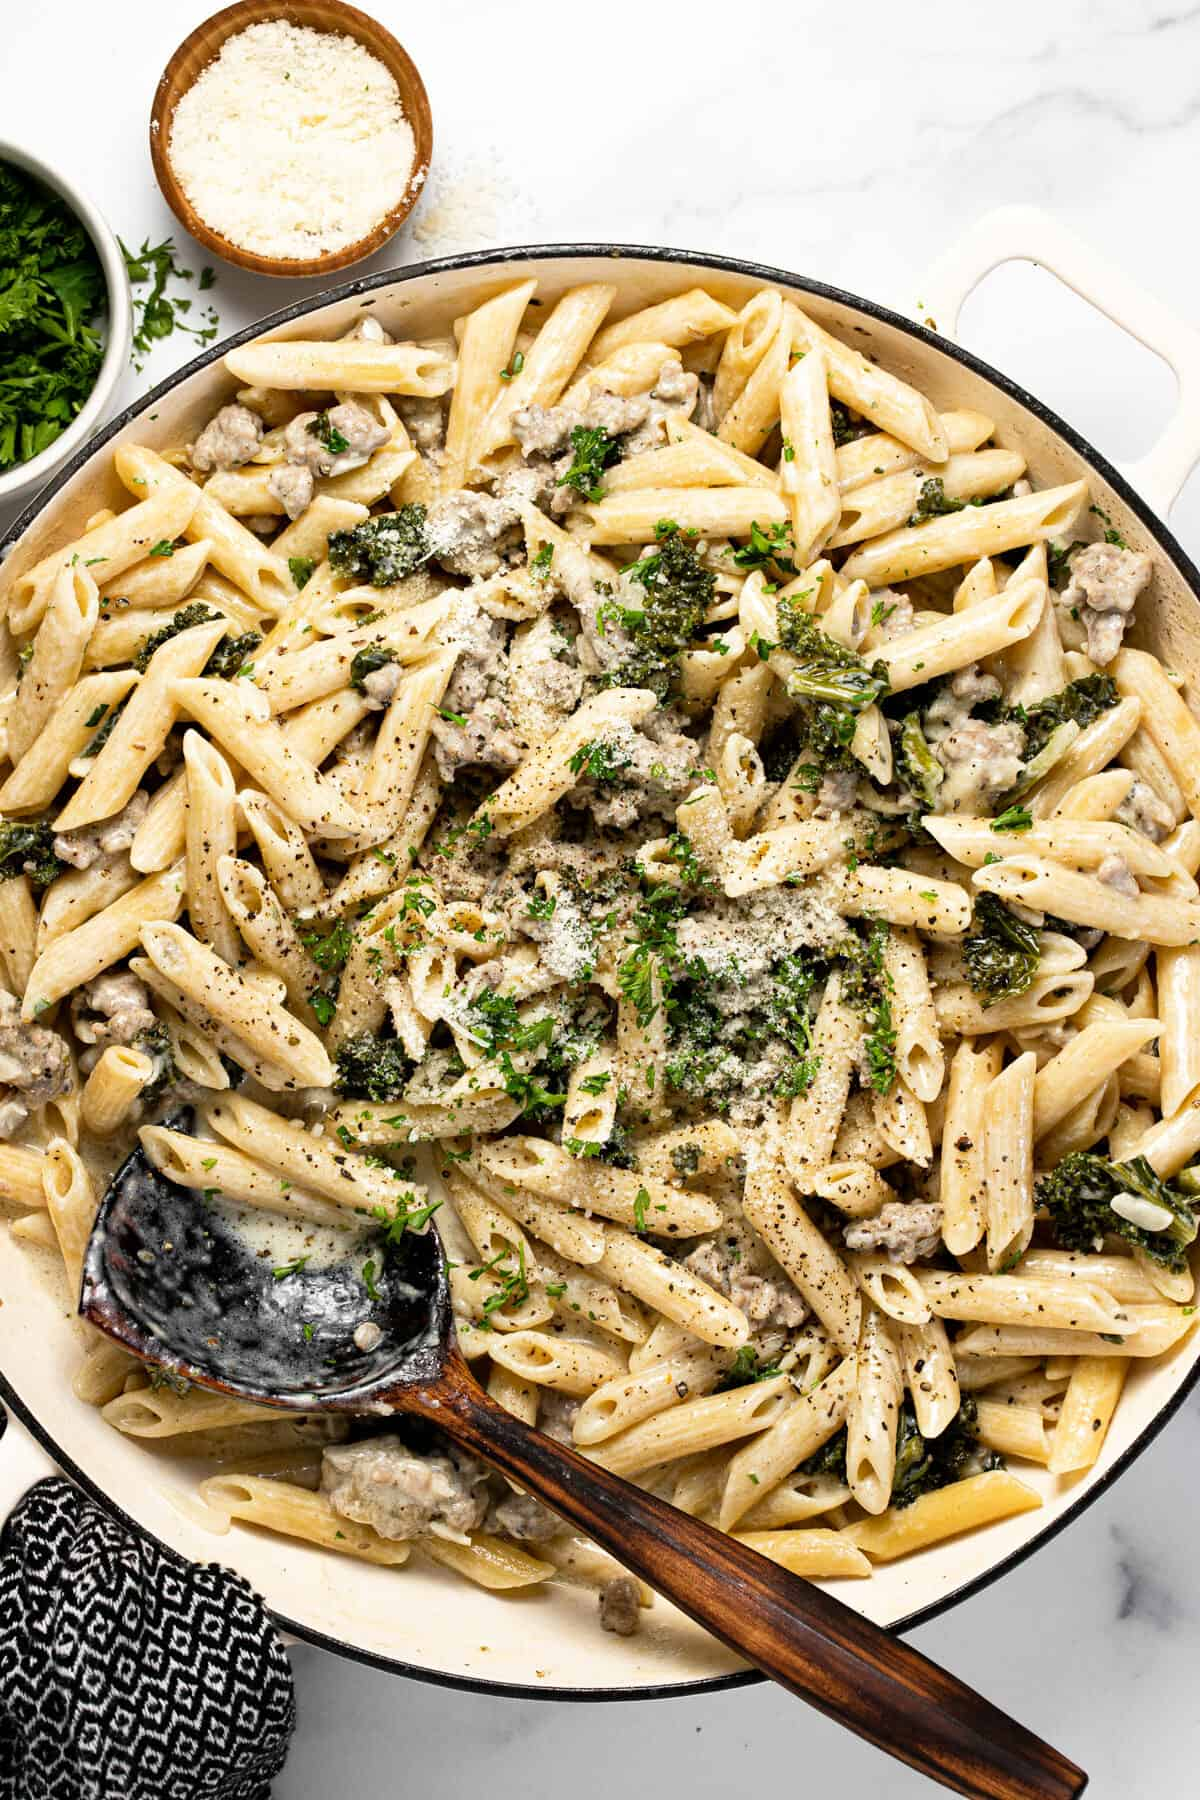 Large white pan filled with ingredients to make Italian sausage pasta garnished with chopped parsley